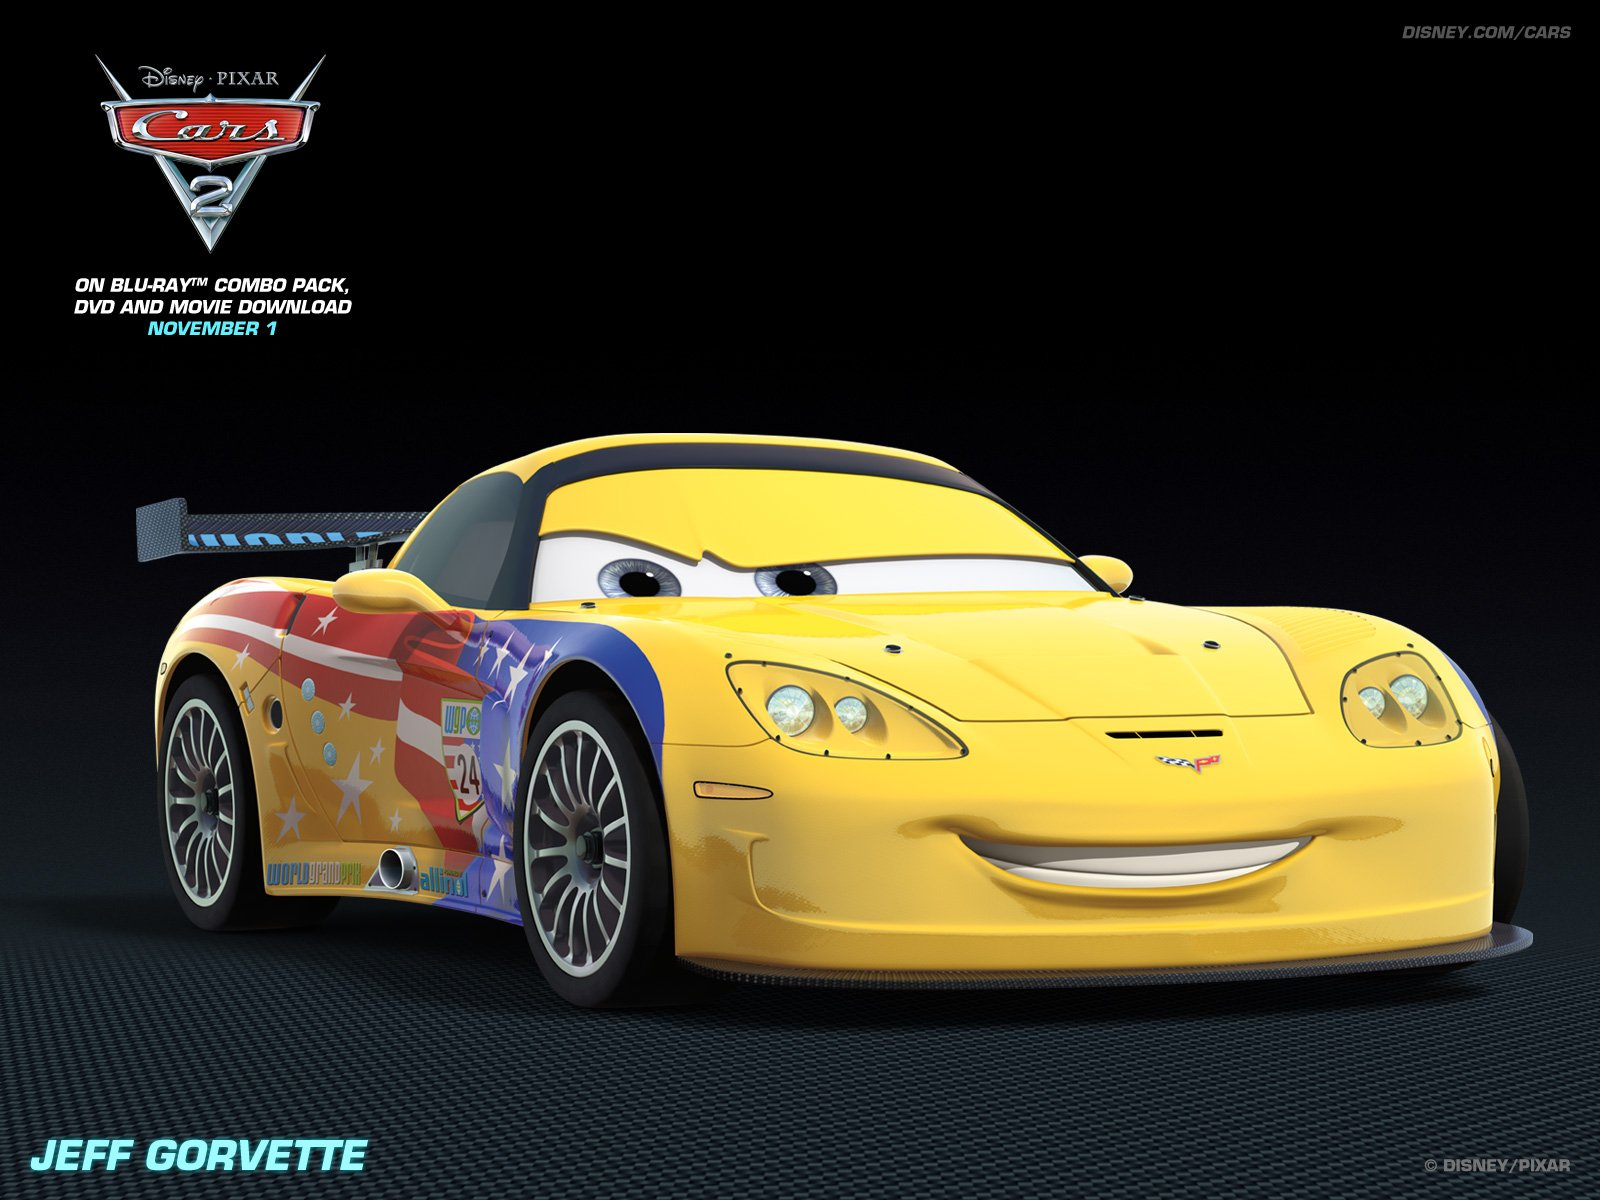 Disney pixar cars wallpaper wallpapersafari for Disney pixar cars mural wallpaper